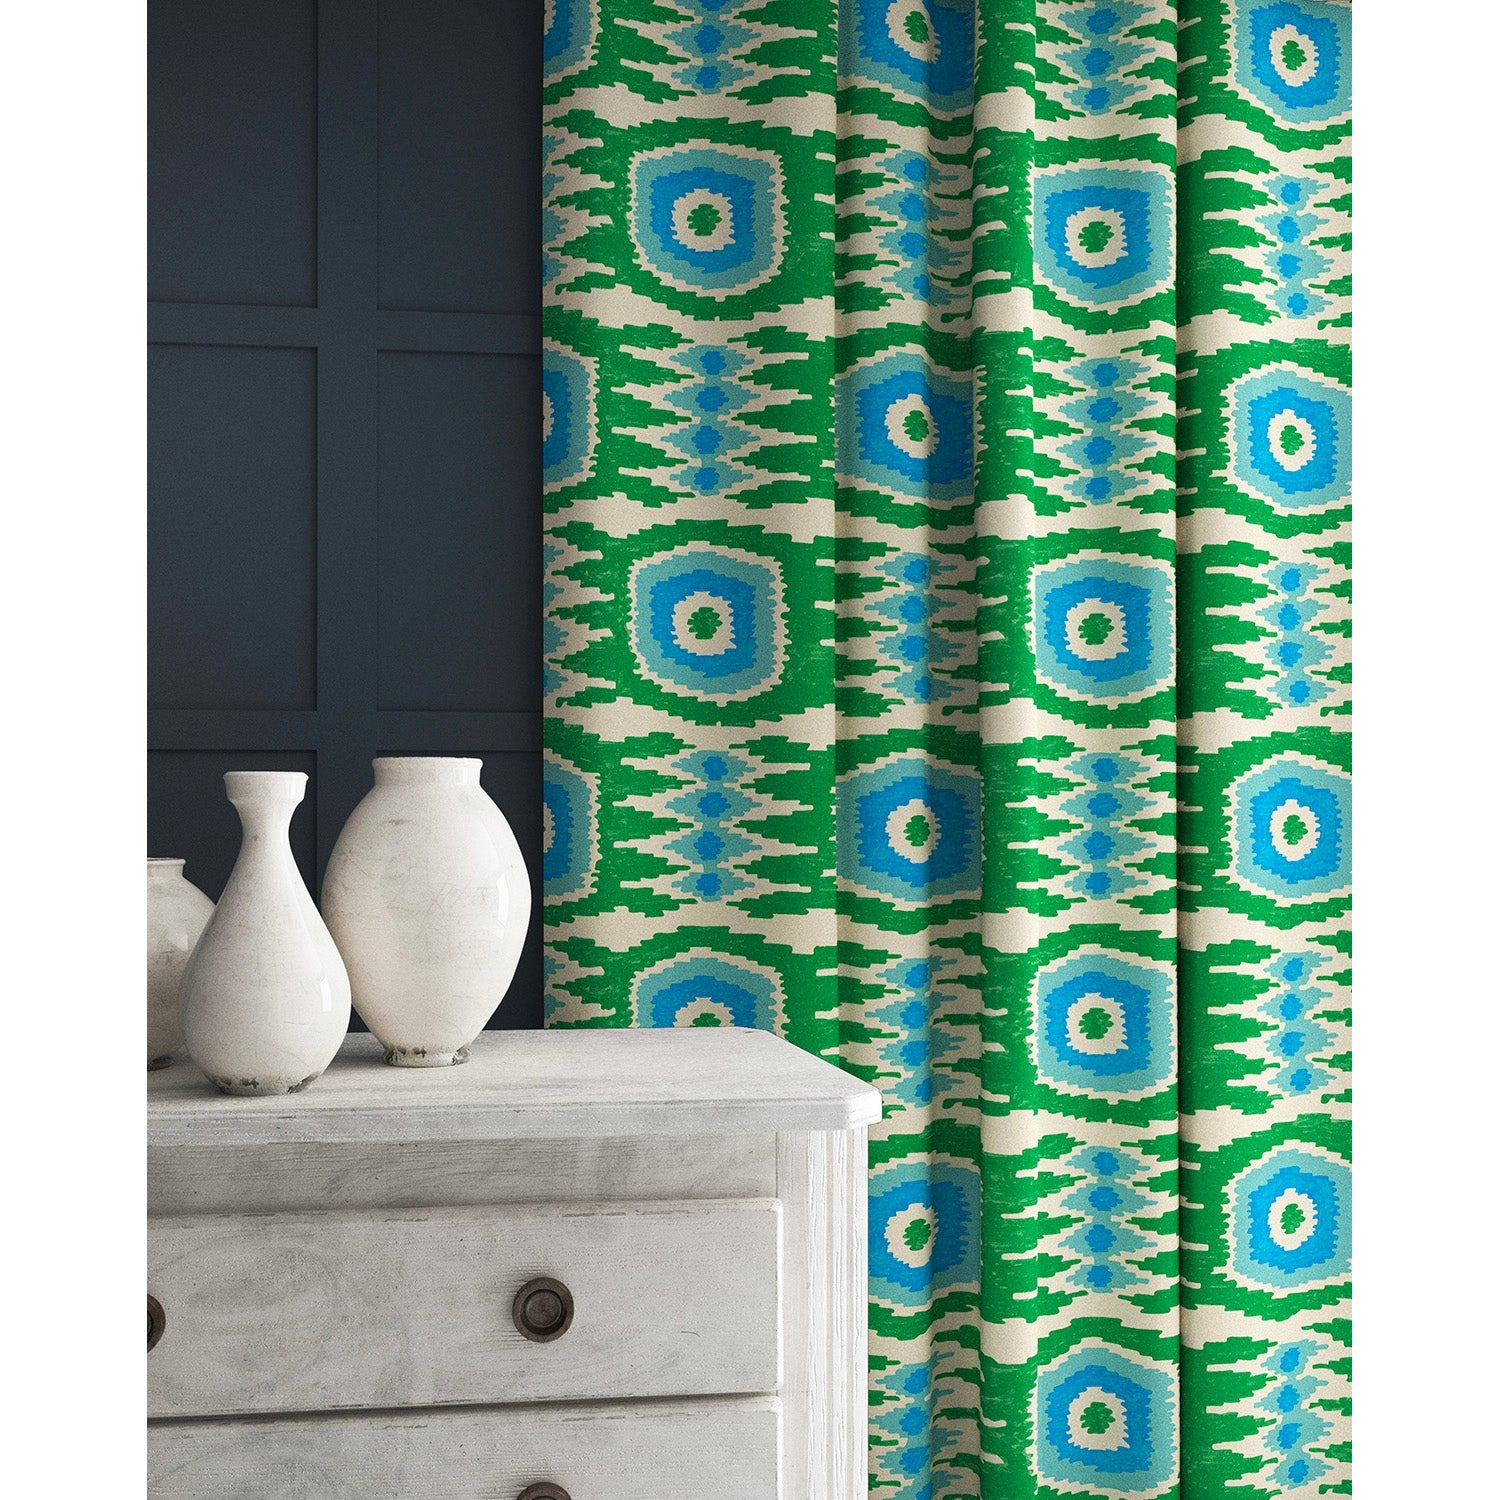 Velvet curtains in a green and blue velvet fabric with stain resistant finish and abstract print